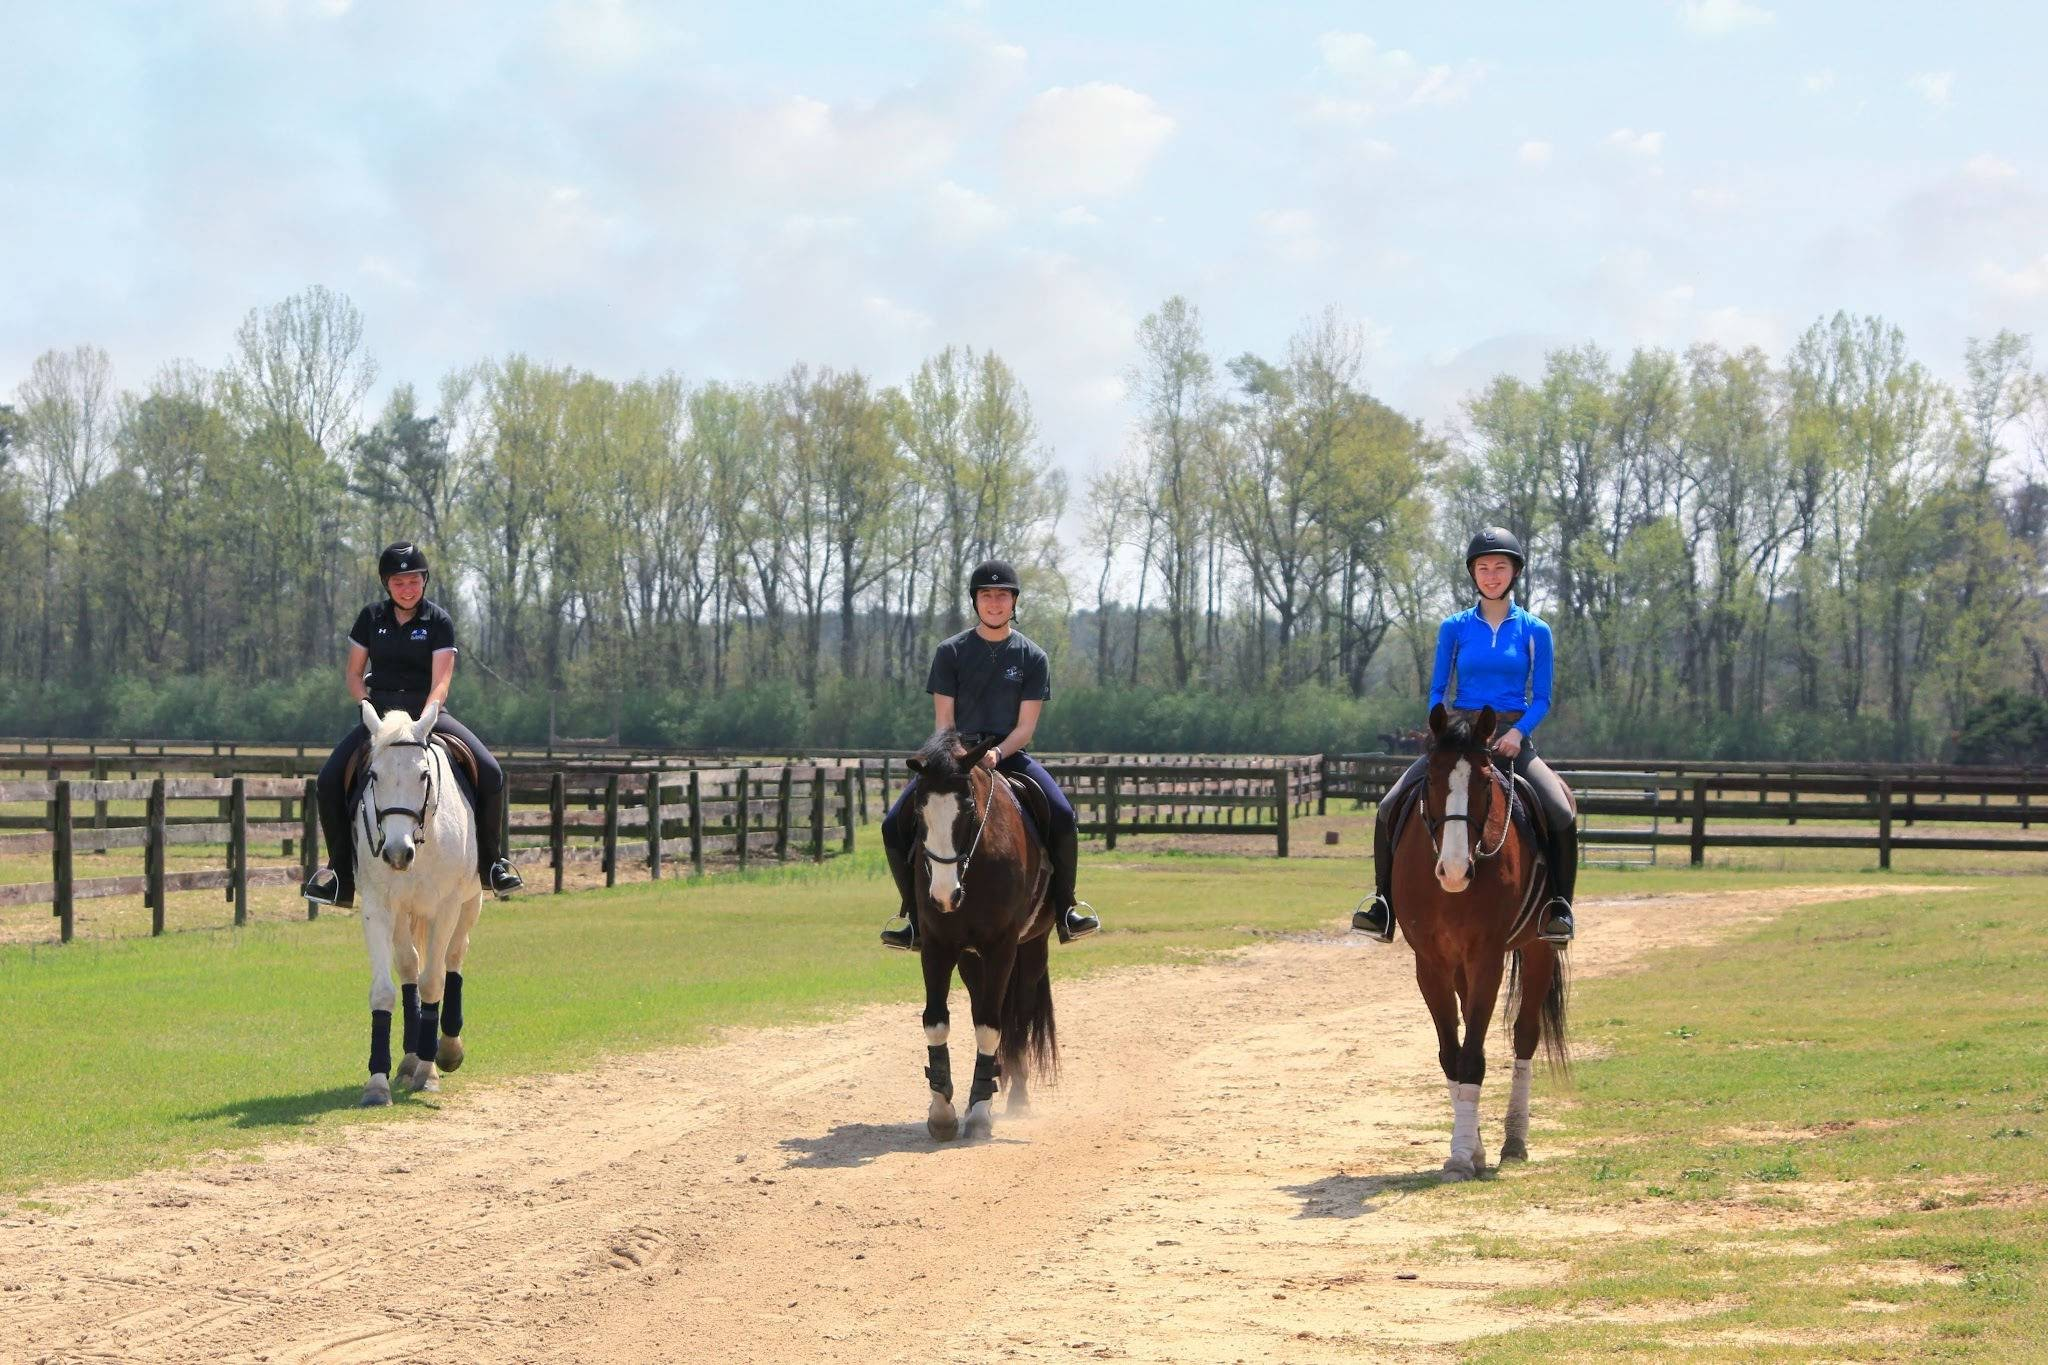 St. Andrews Equestrian Education Is One of the Most Celebrated in the Country